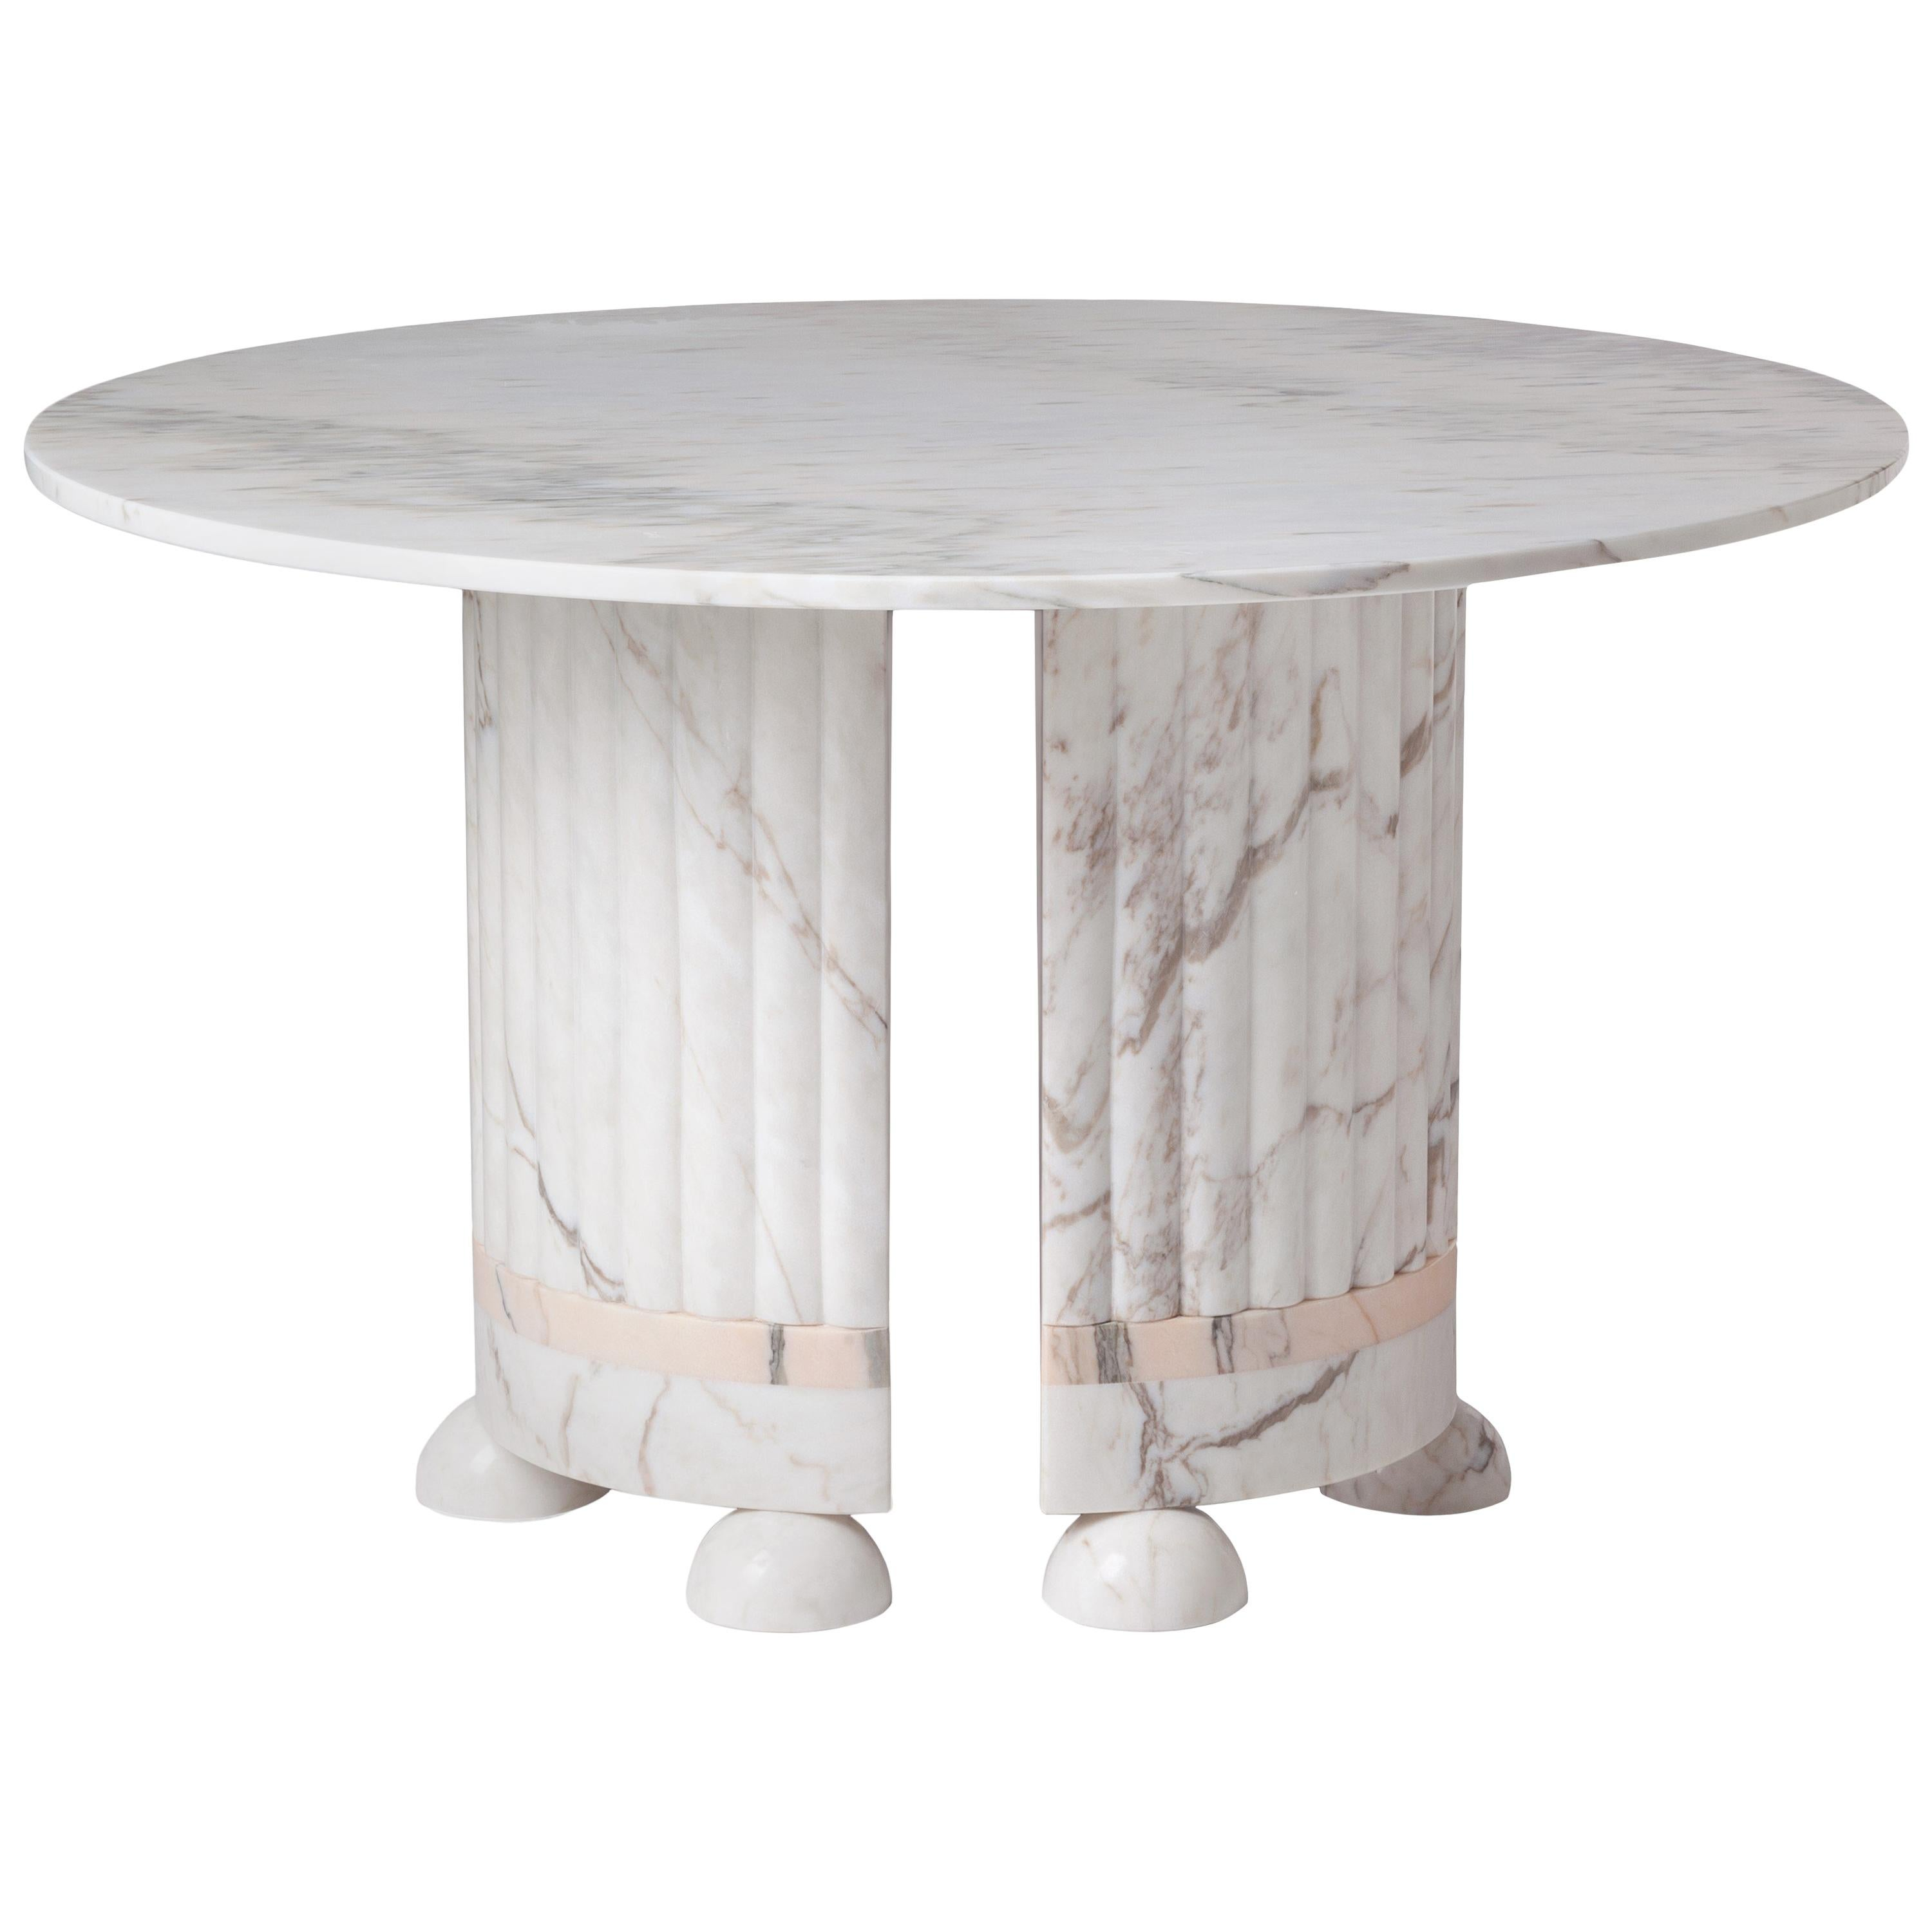 Dome Marble Dining Table, Contemporary Round Table In White And Rose Marble